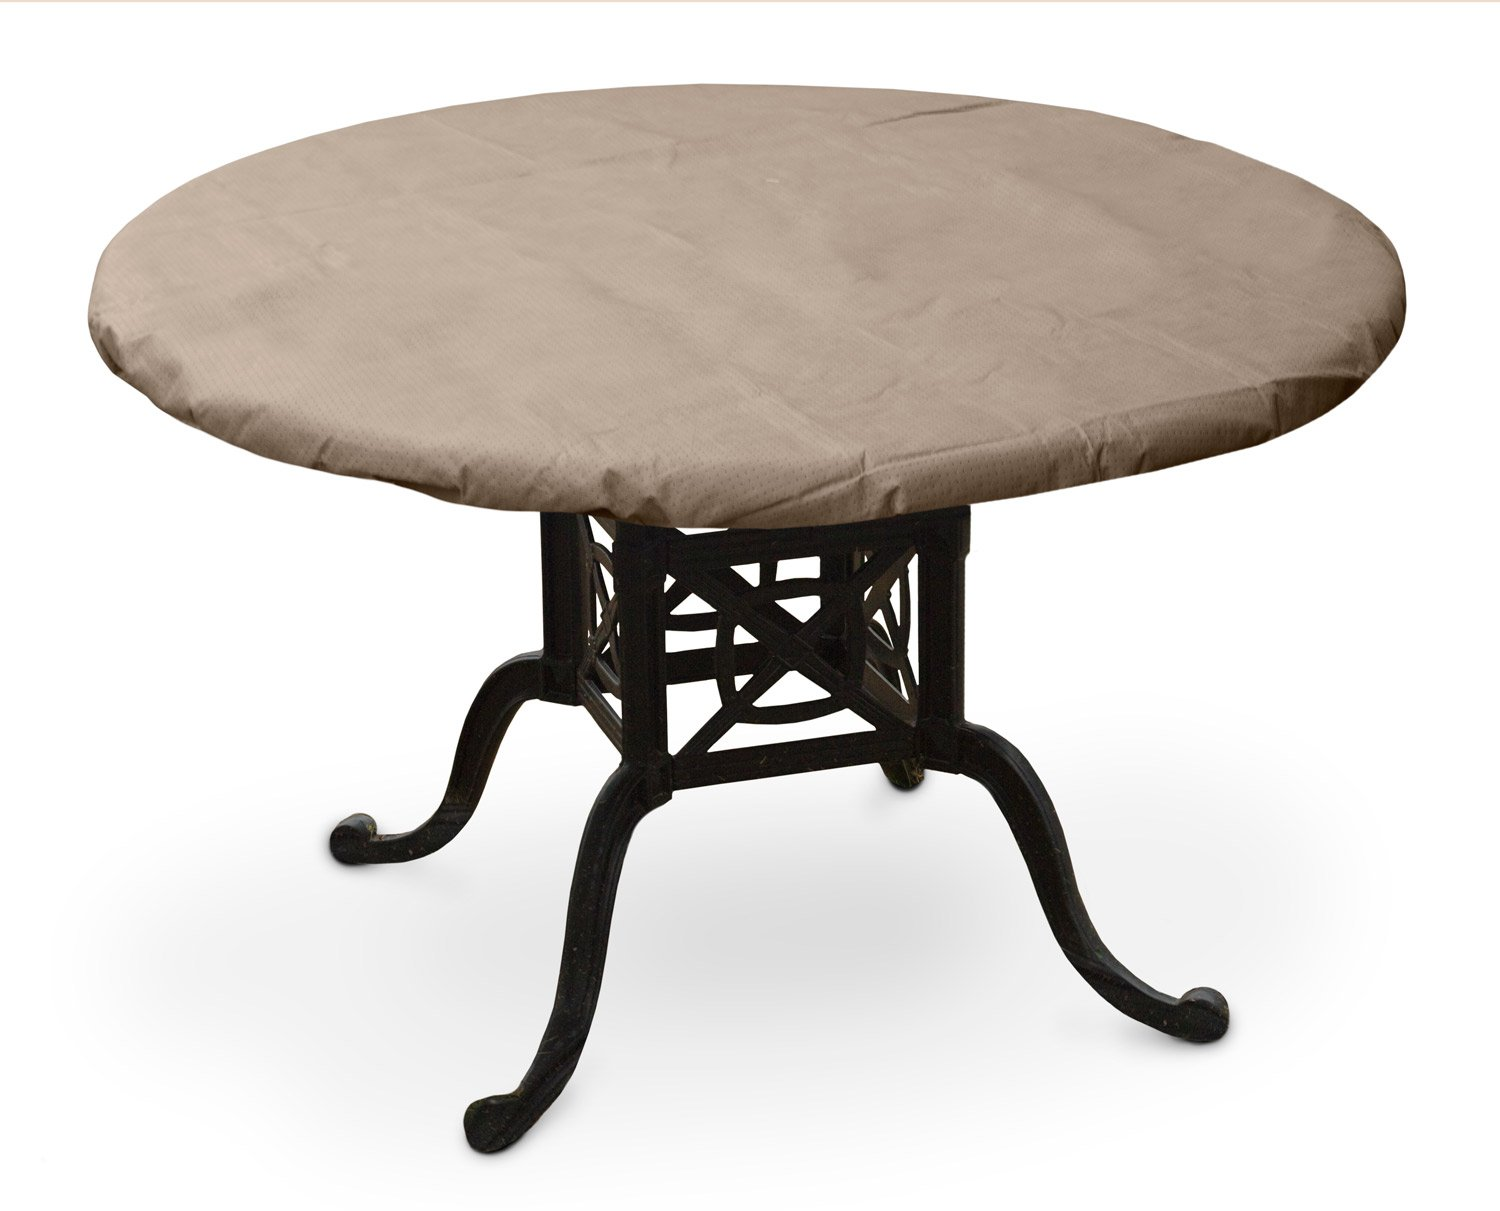 KoverRoos III 31560 50-Inch Round Table Top Cover, 54-Inch Diameter, Taupe by KOVERROOS